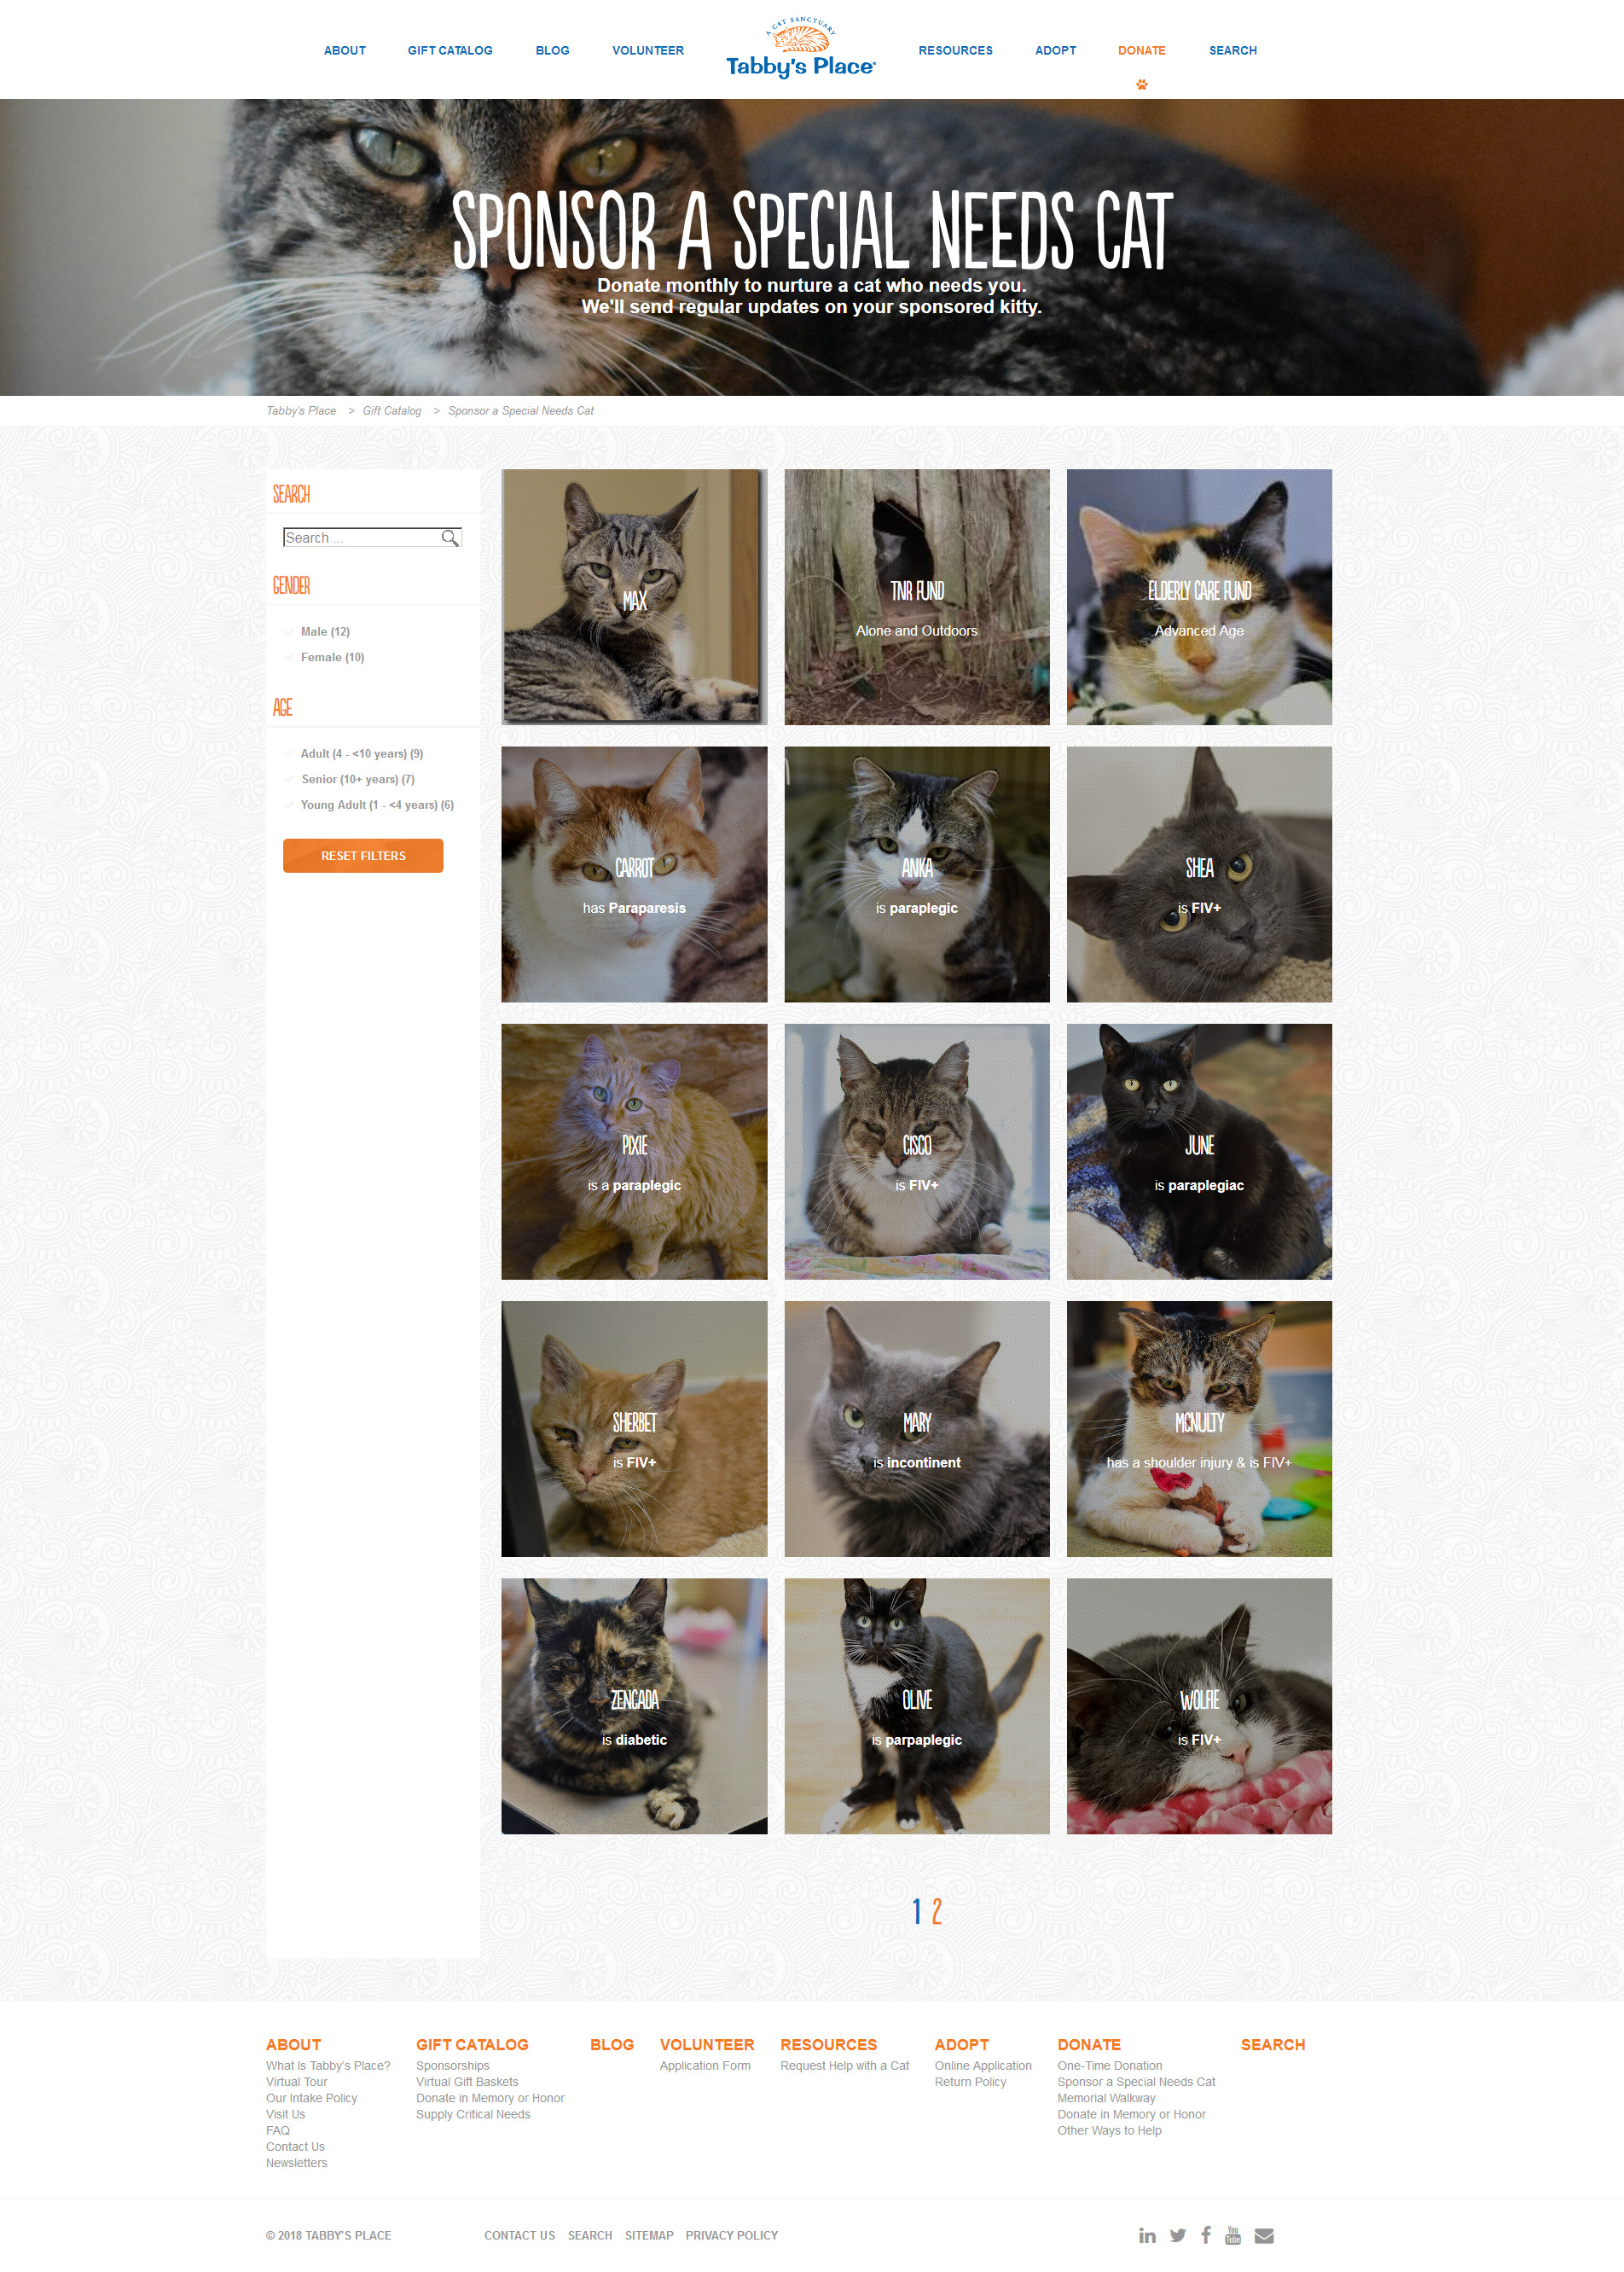 The Sponsor cat archives, allowing visitors to filter through the Special Needs cats.